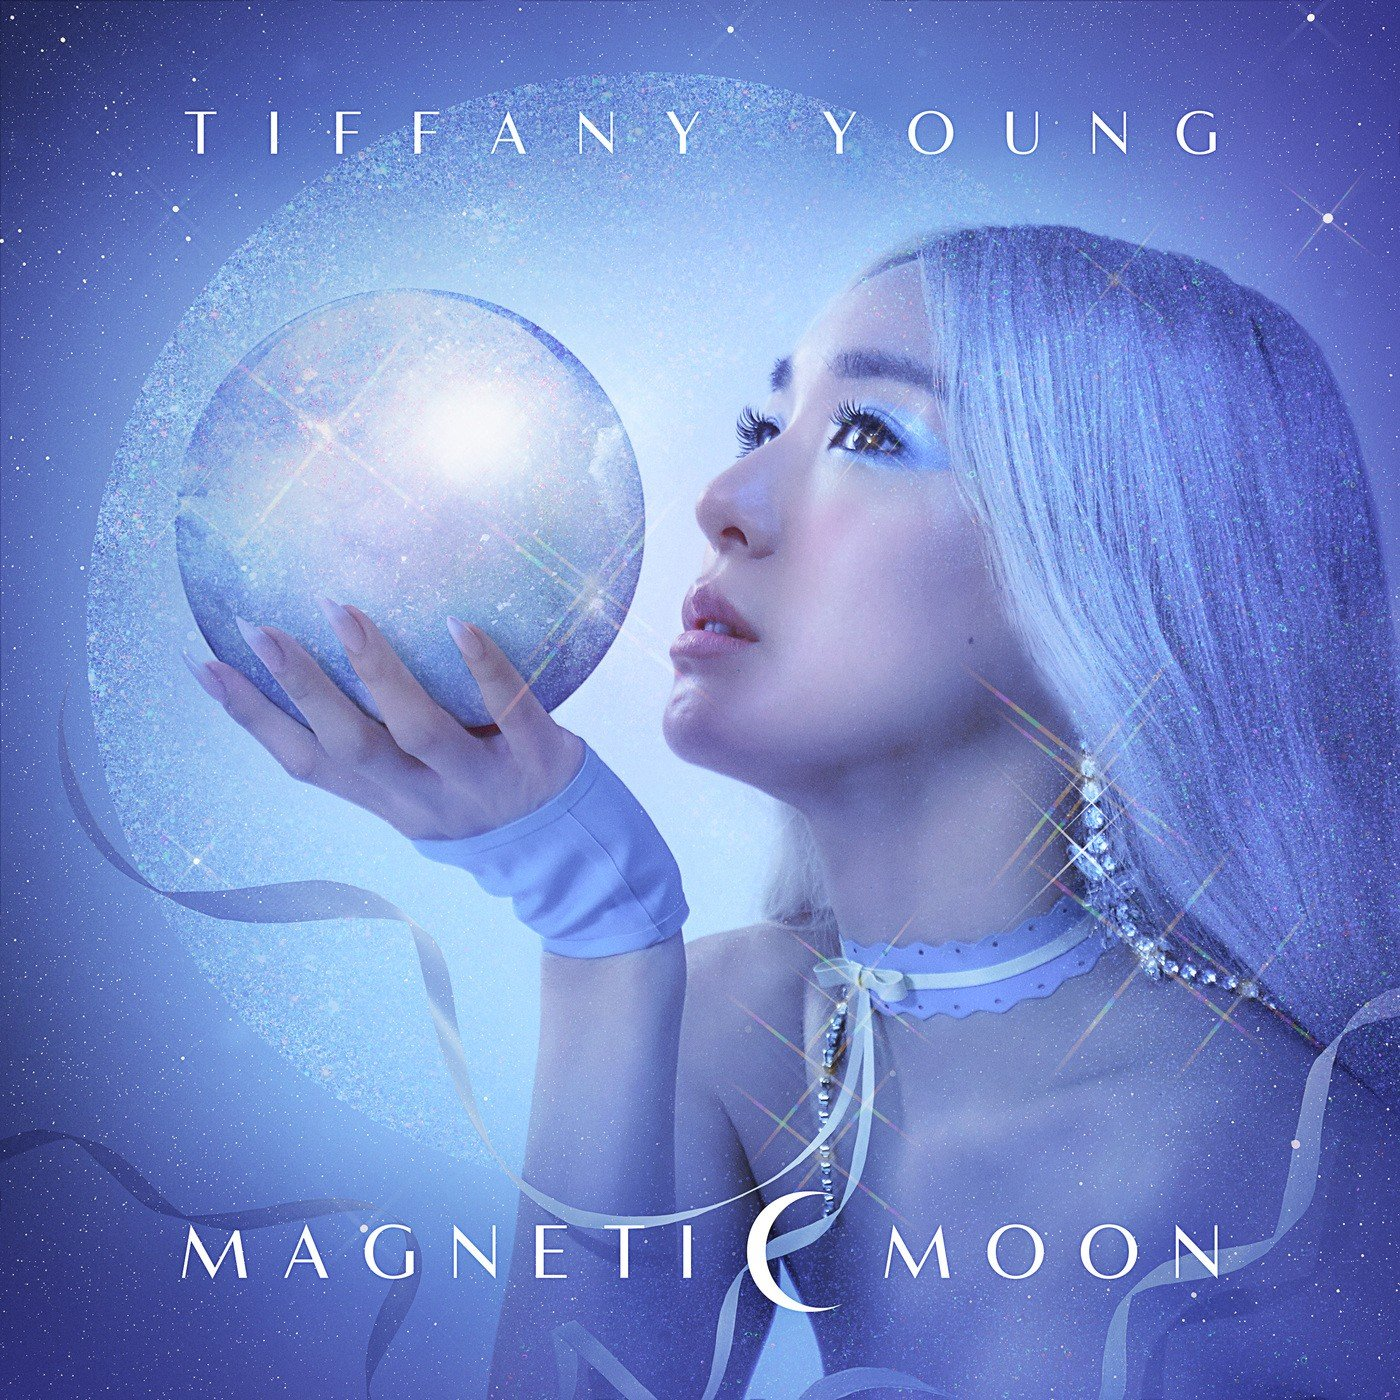 Tiffany Young – Magnetic Moon [FLAC + MP3 320 / WEB] [2019.08.02]